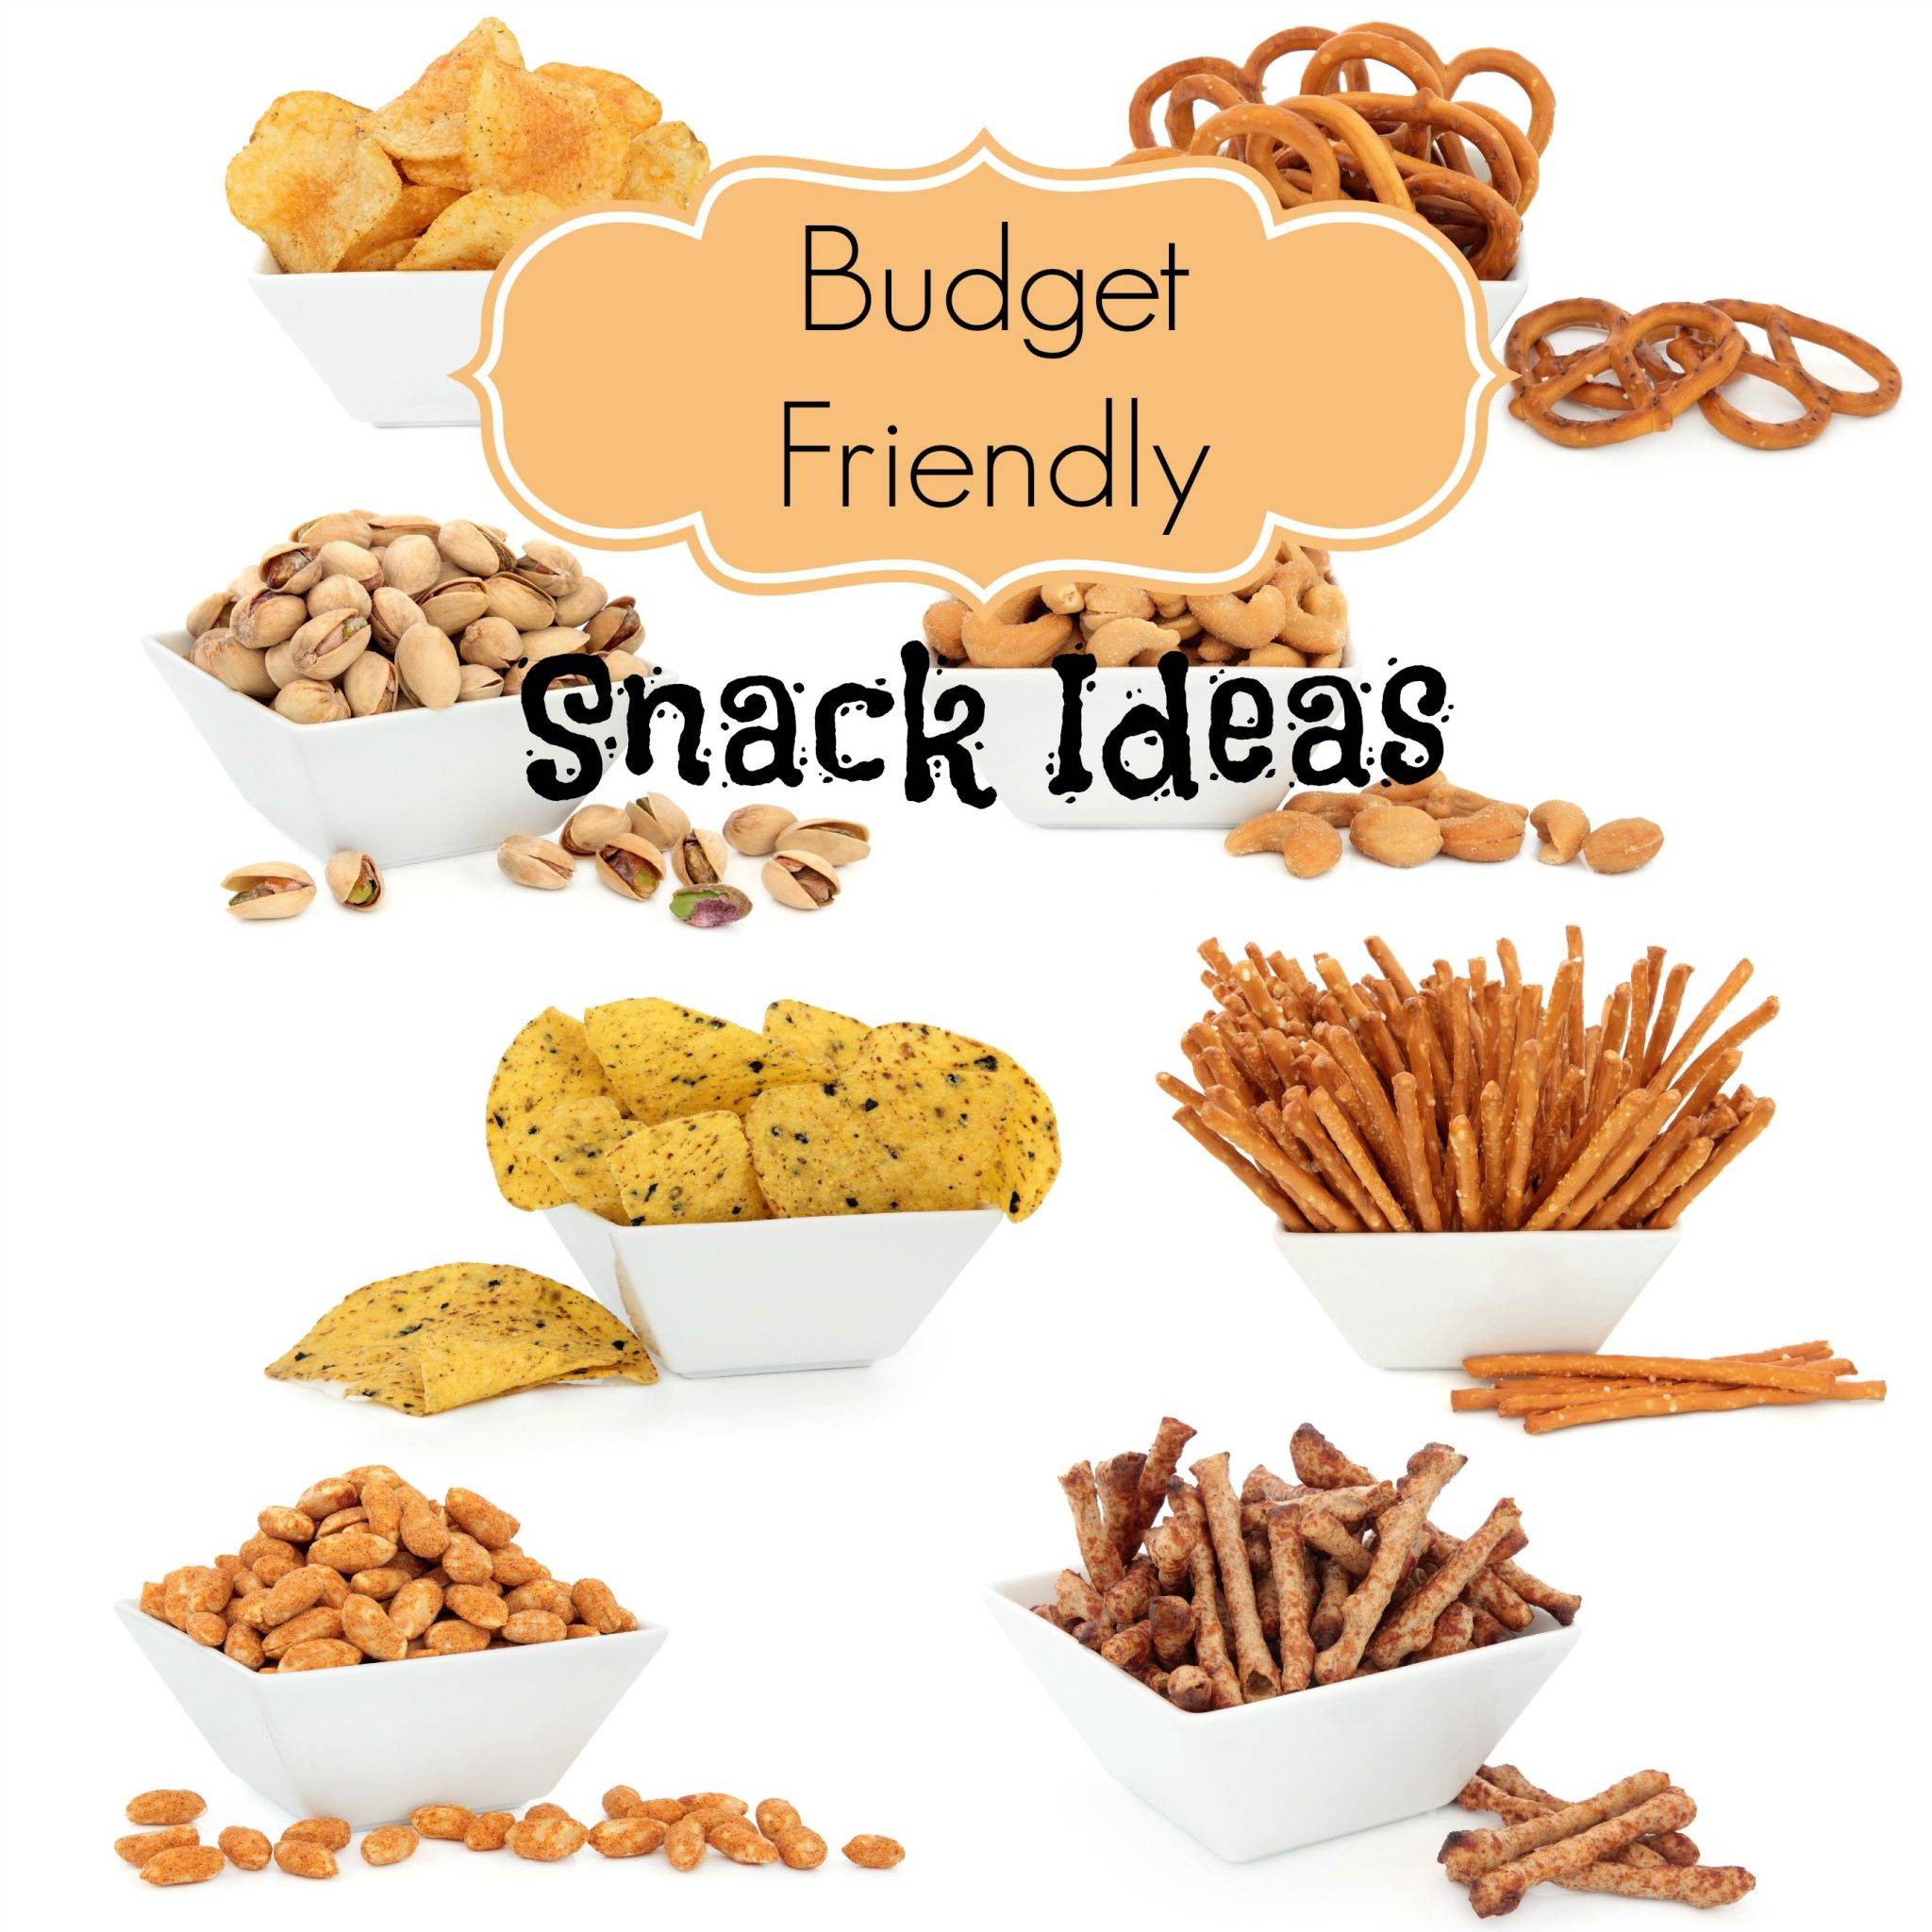 Healthy Snacks On A Budget  Snack Ideas on a Bud Around My Family Table